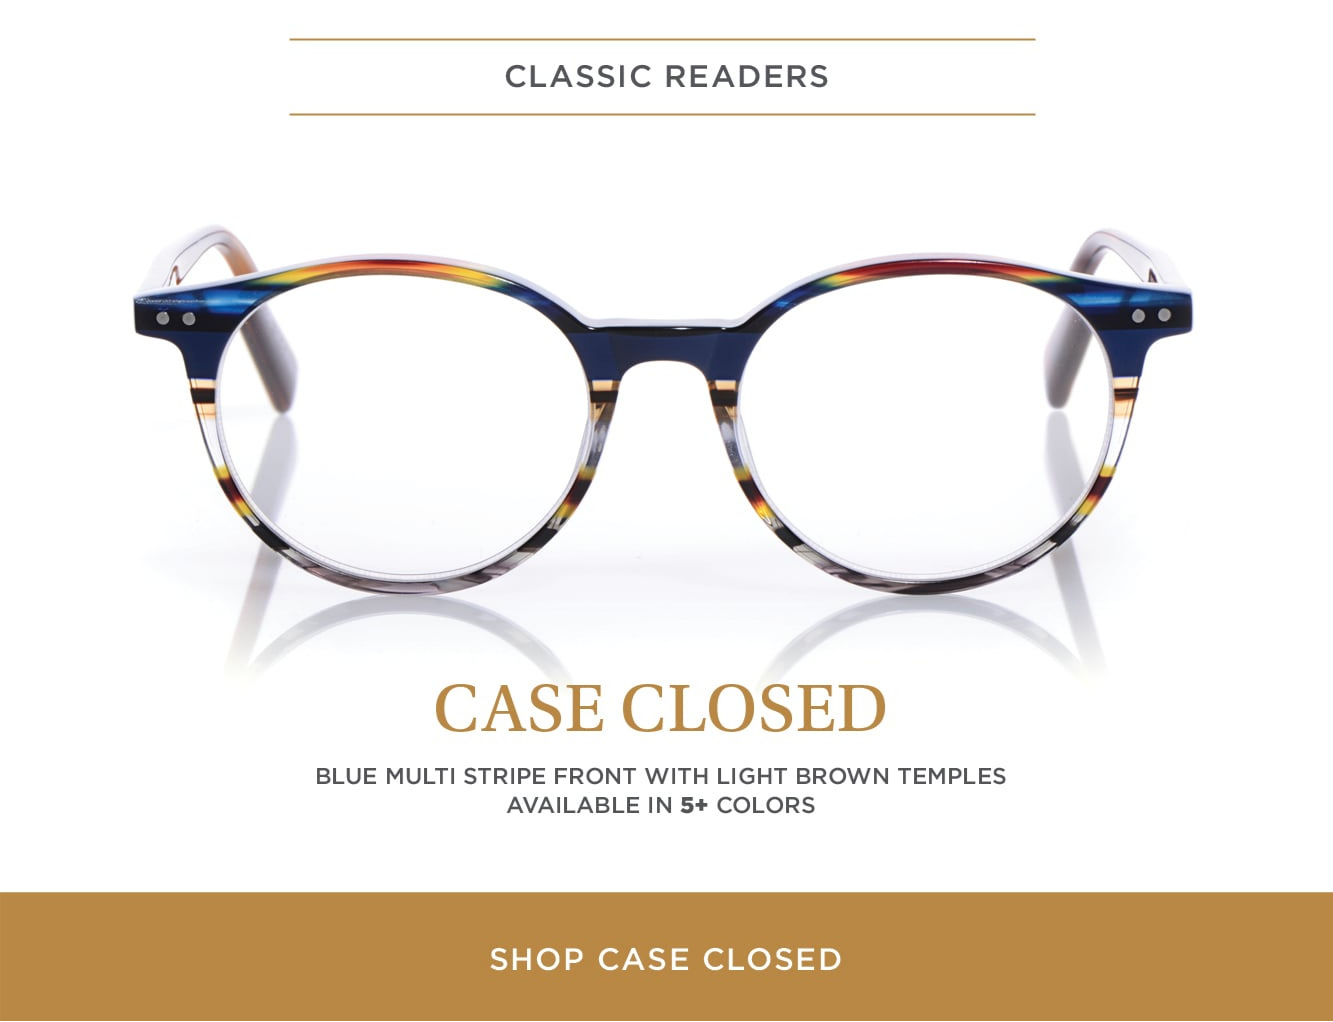 Shop Case Closed